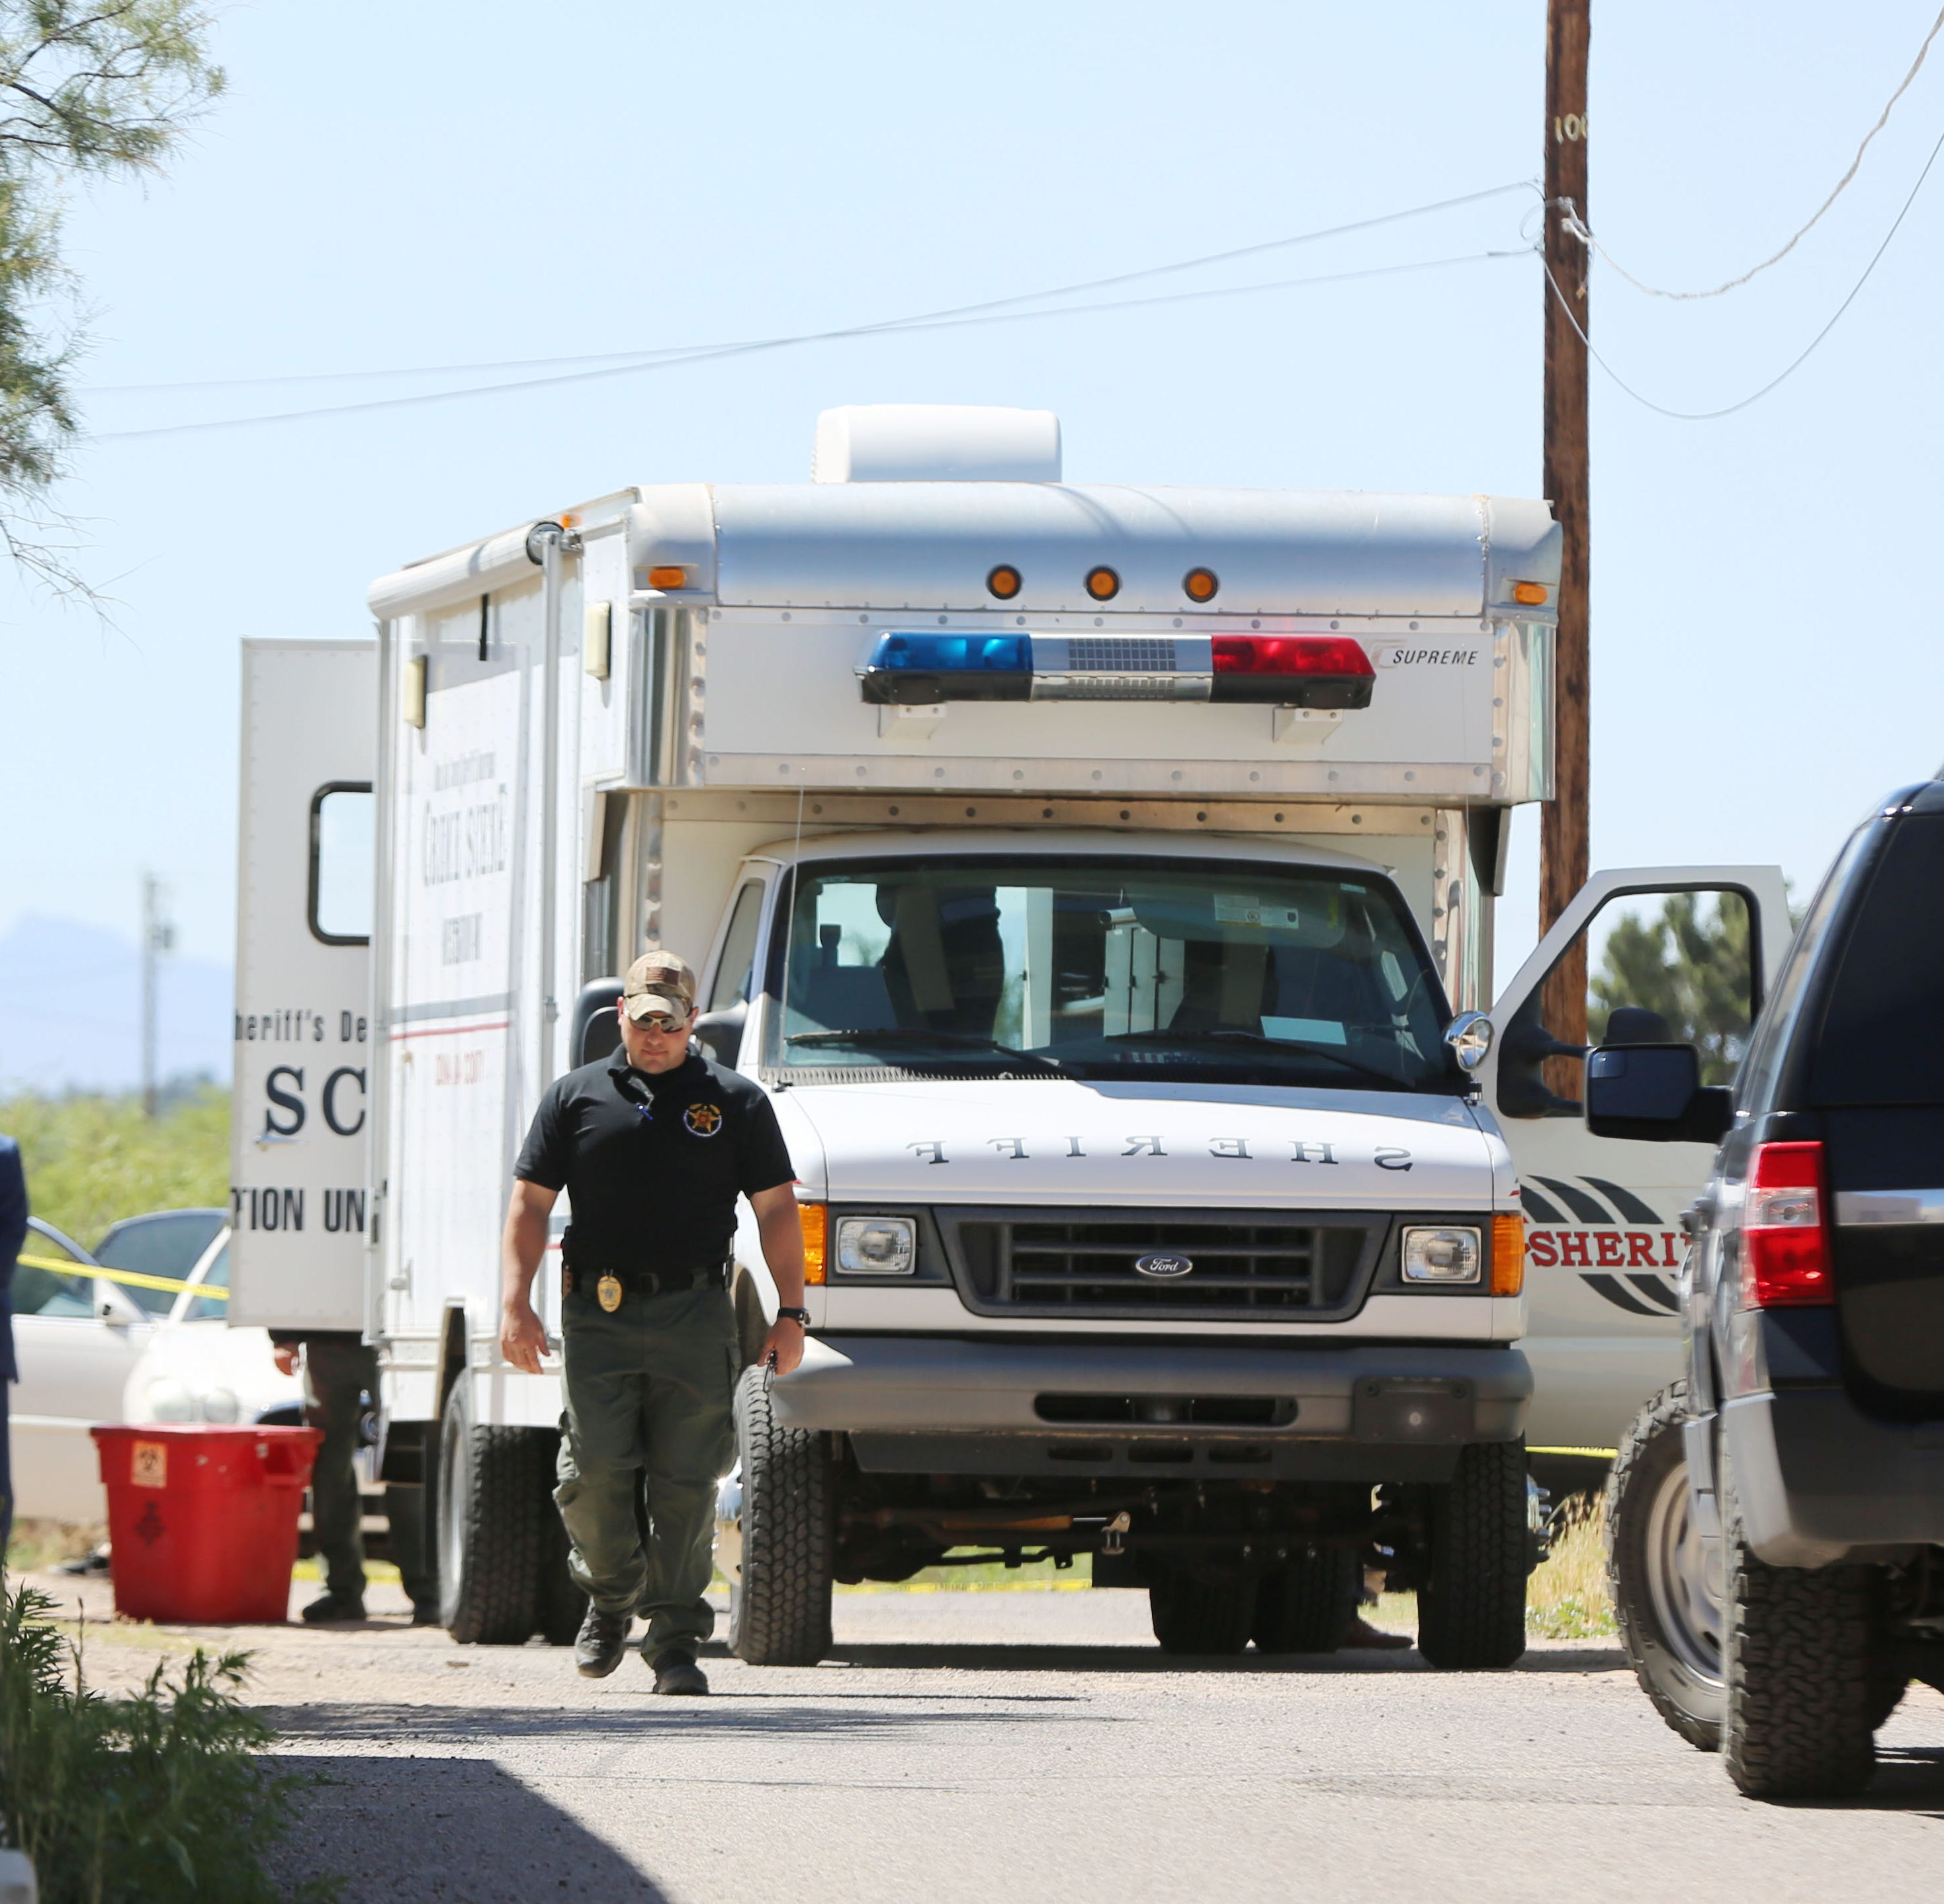 Man claims self-defense after double homicide in Doña Ana